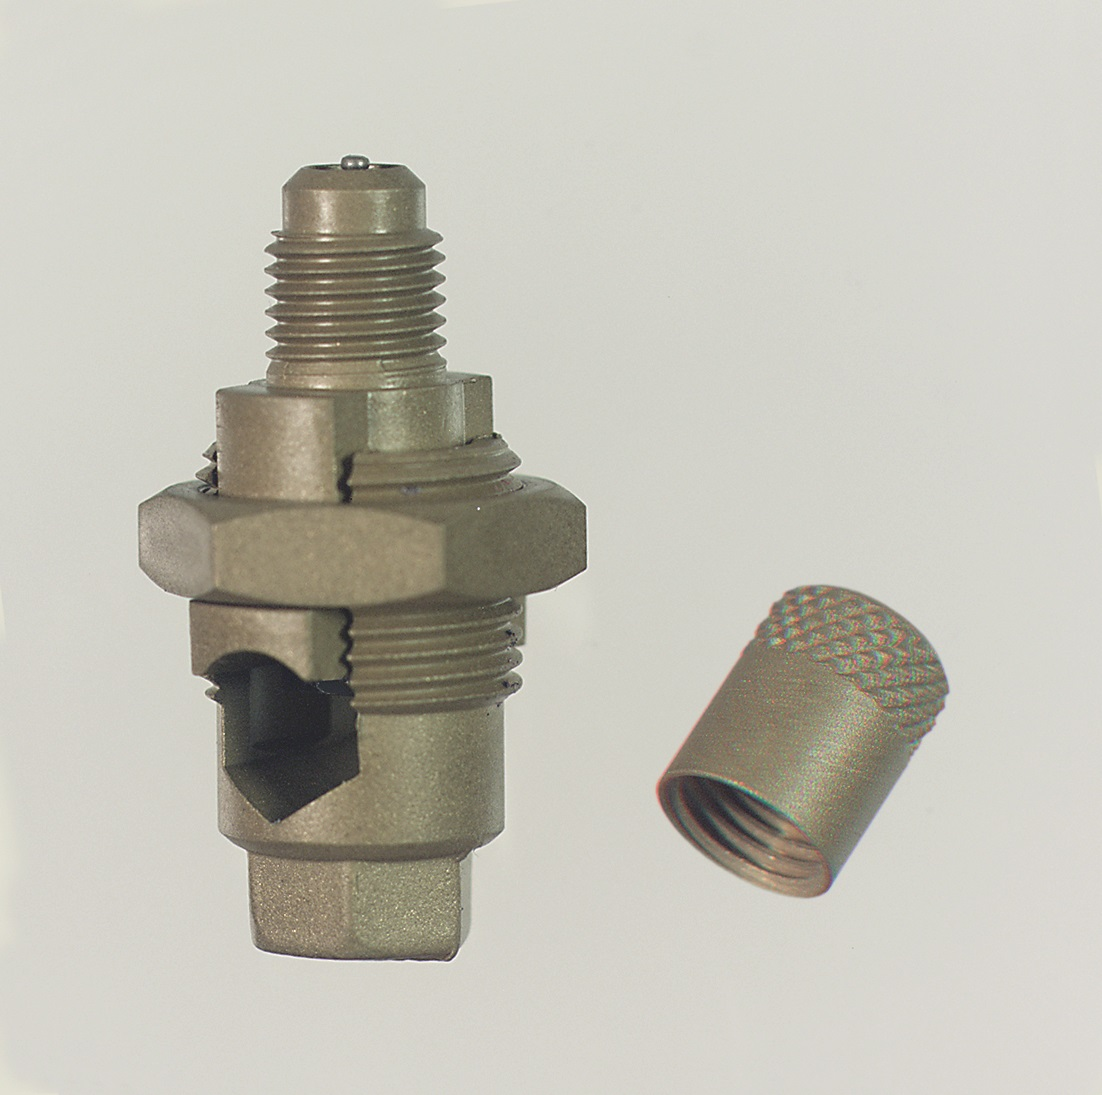 Access service valves, couplers, adapters, fittings – Revers